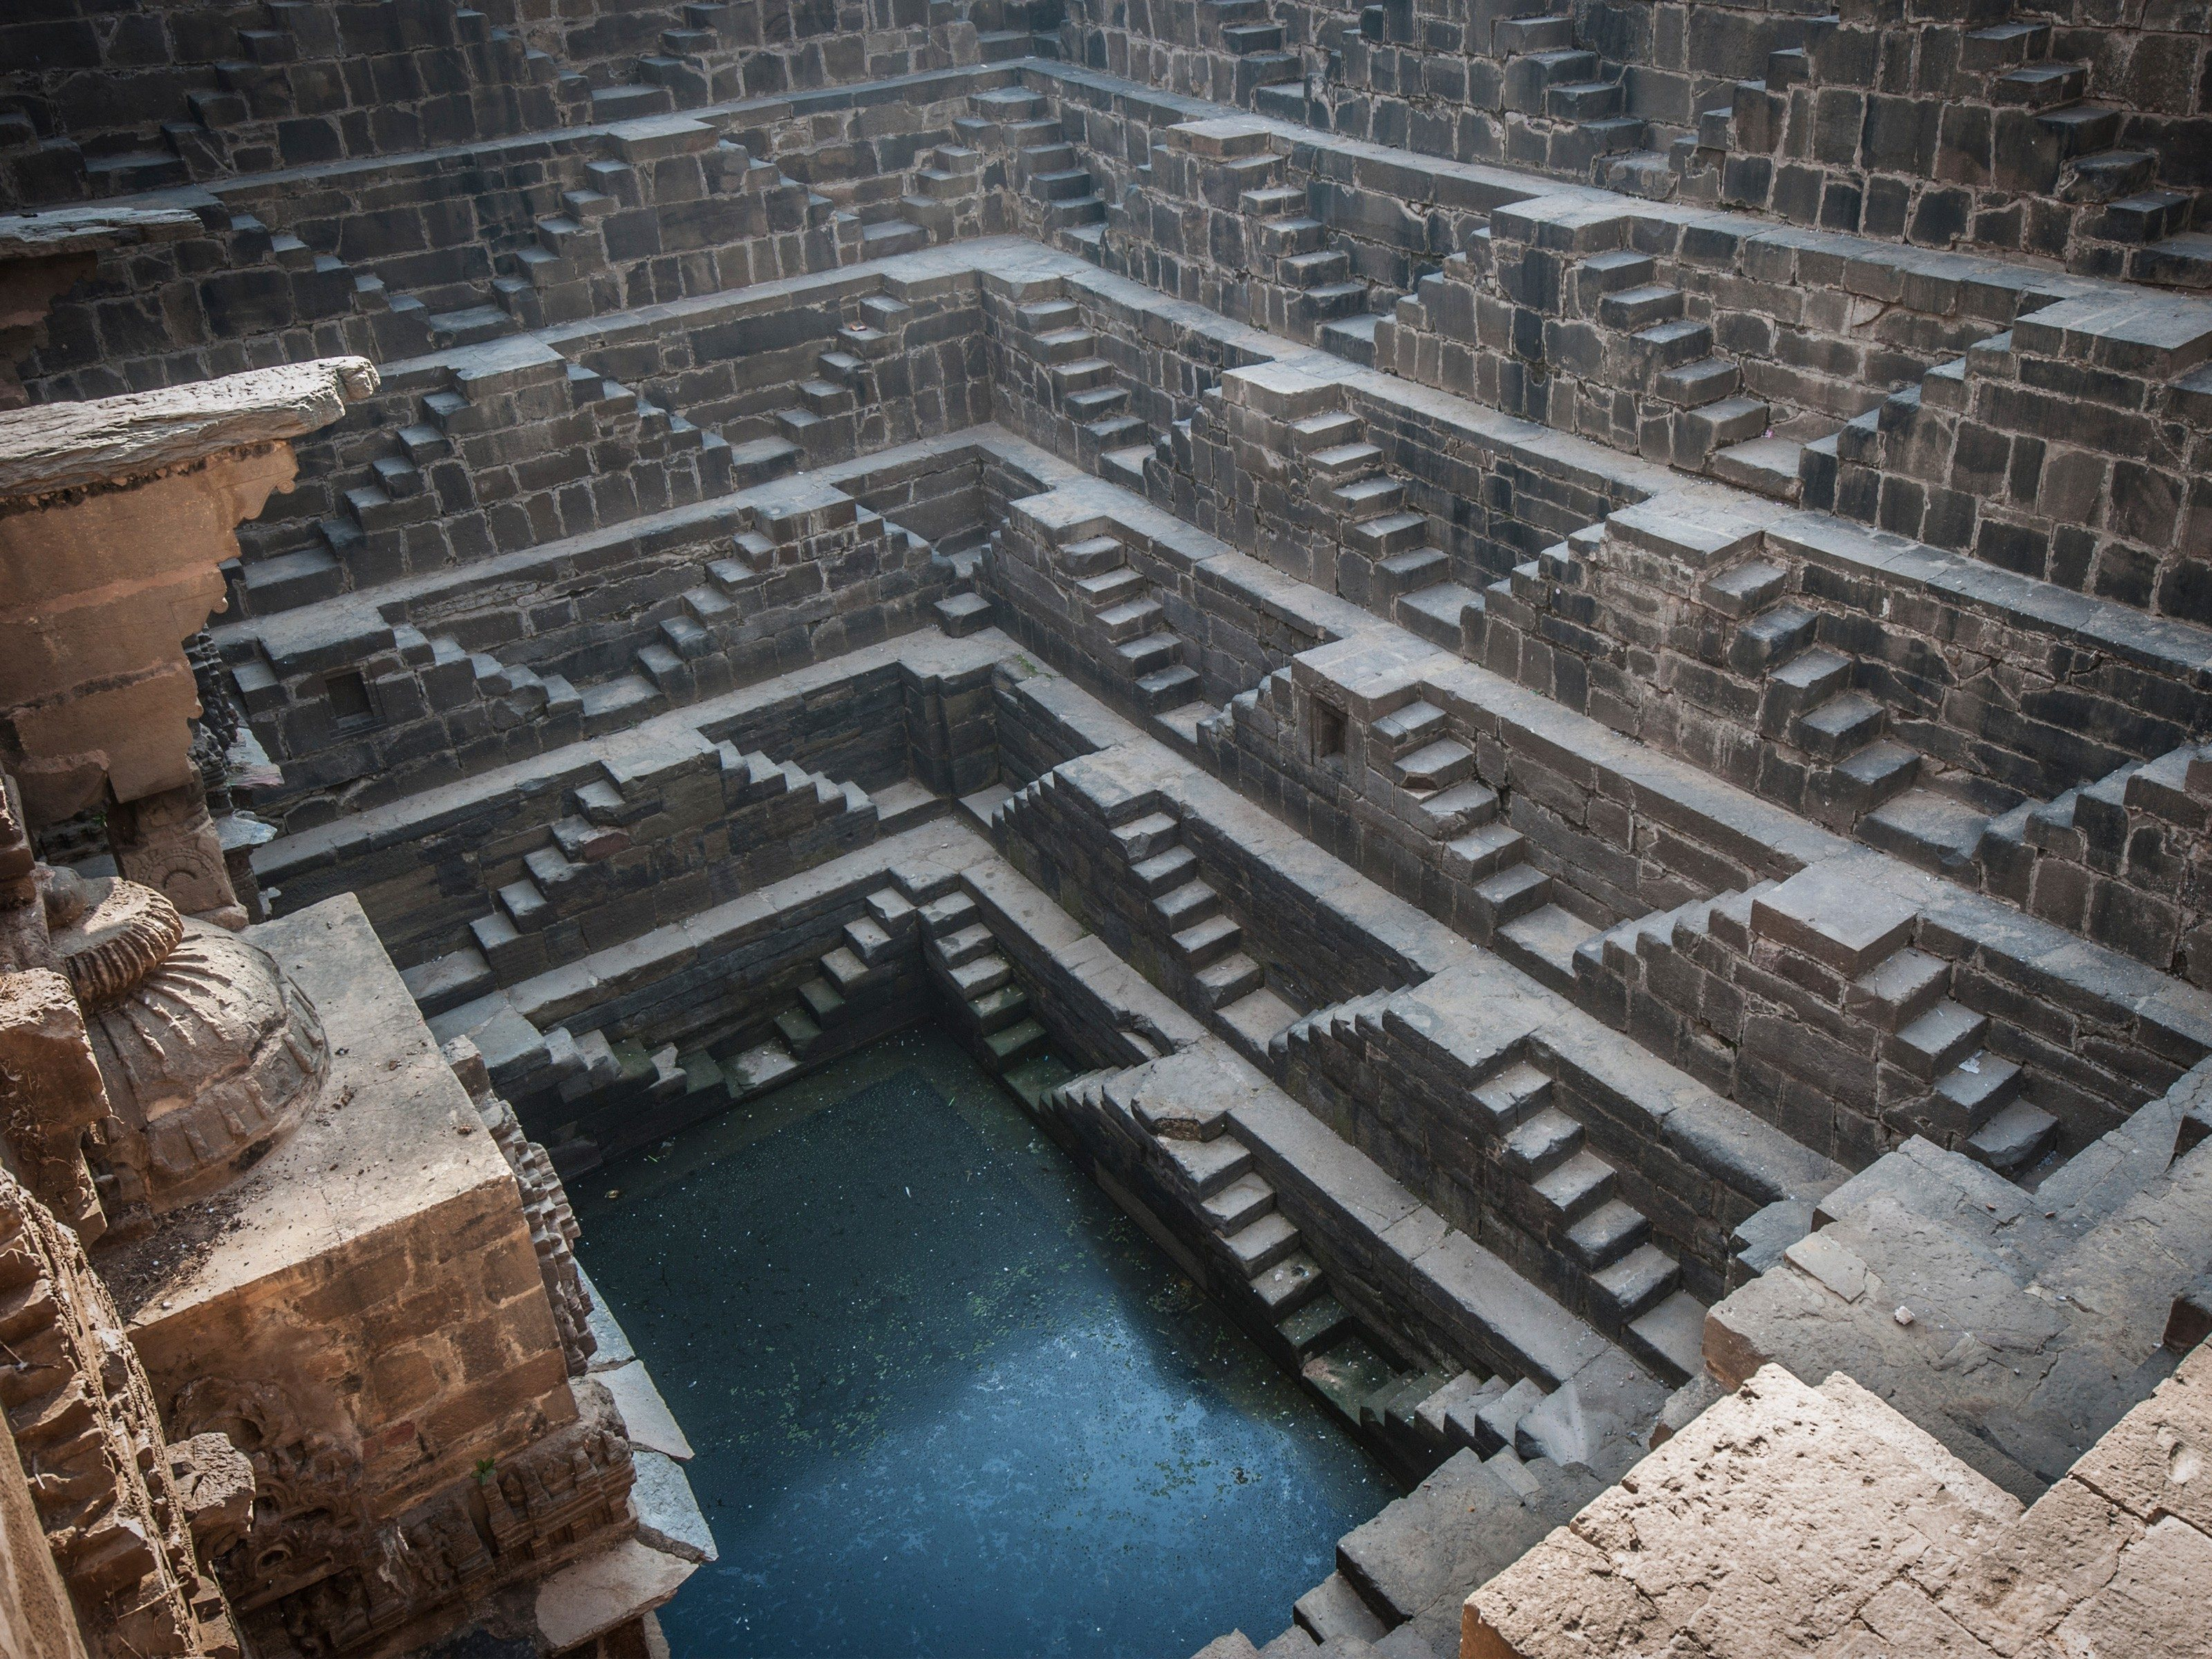 Ancient Building Feats: AchitChand Baori - India